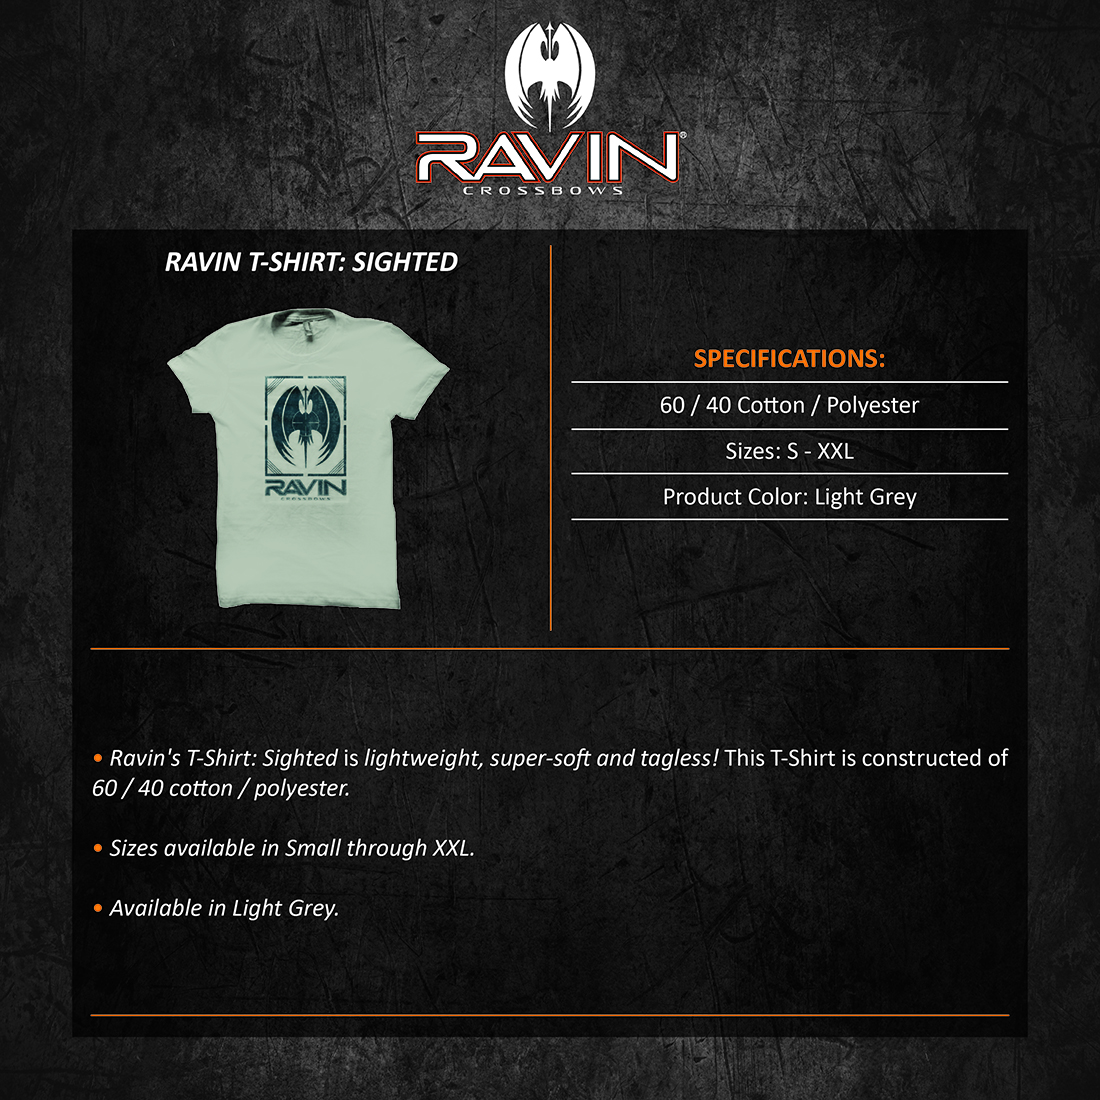 Ravin_Tshirt_Sighted_Product_Description